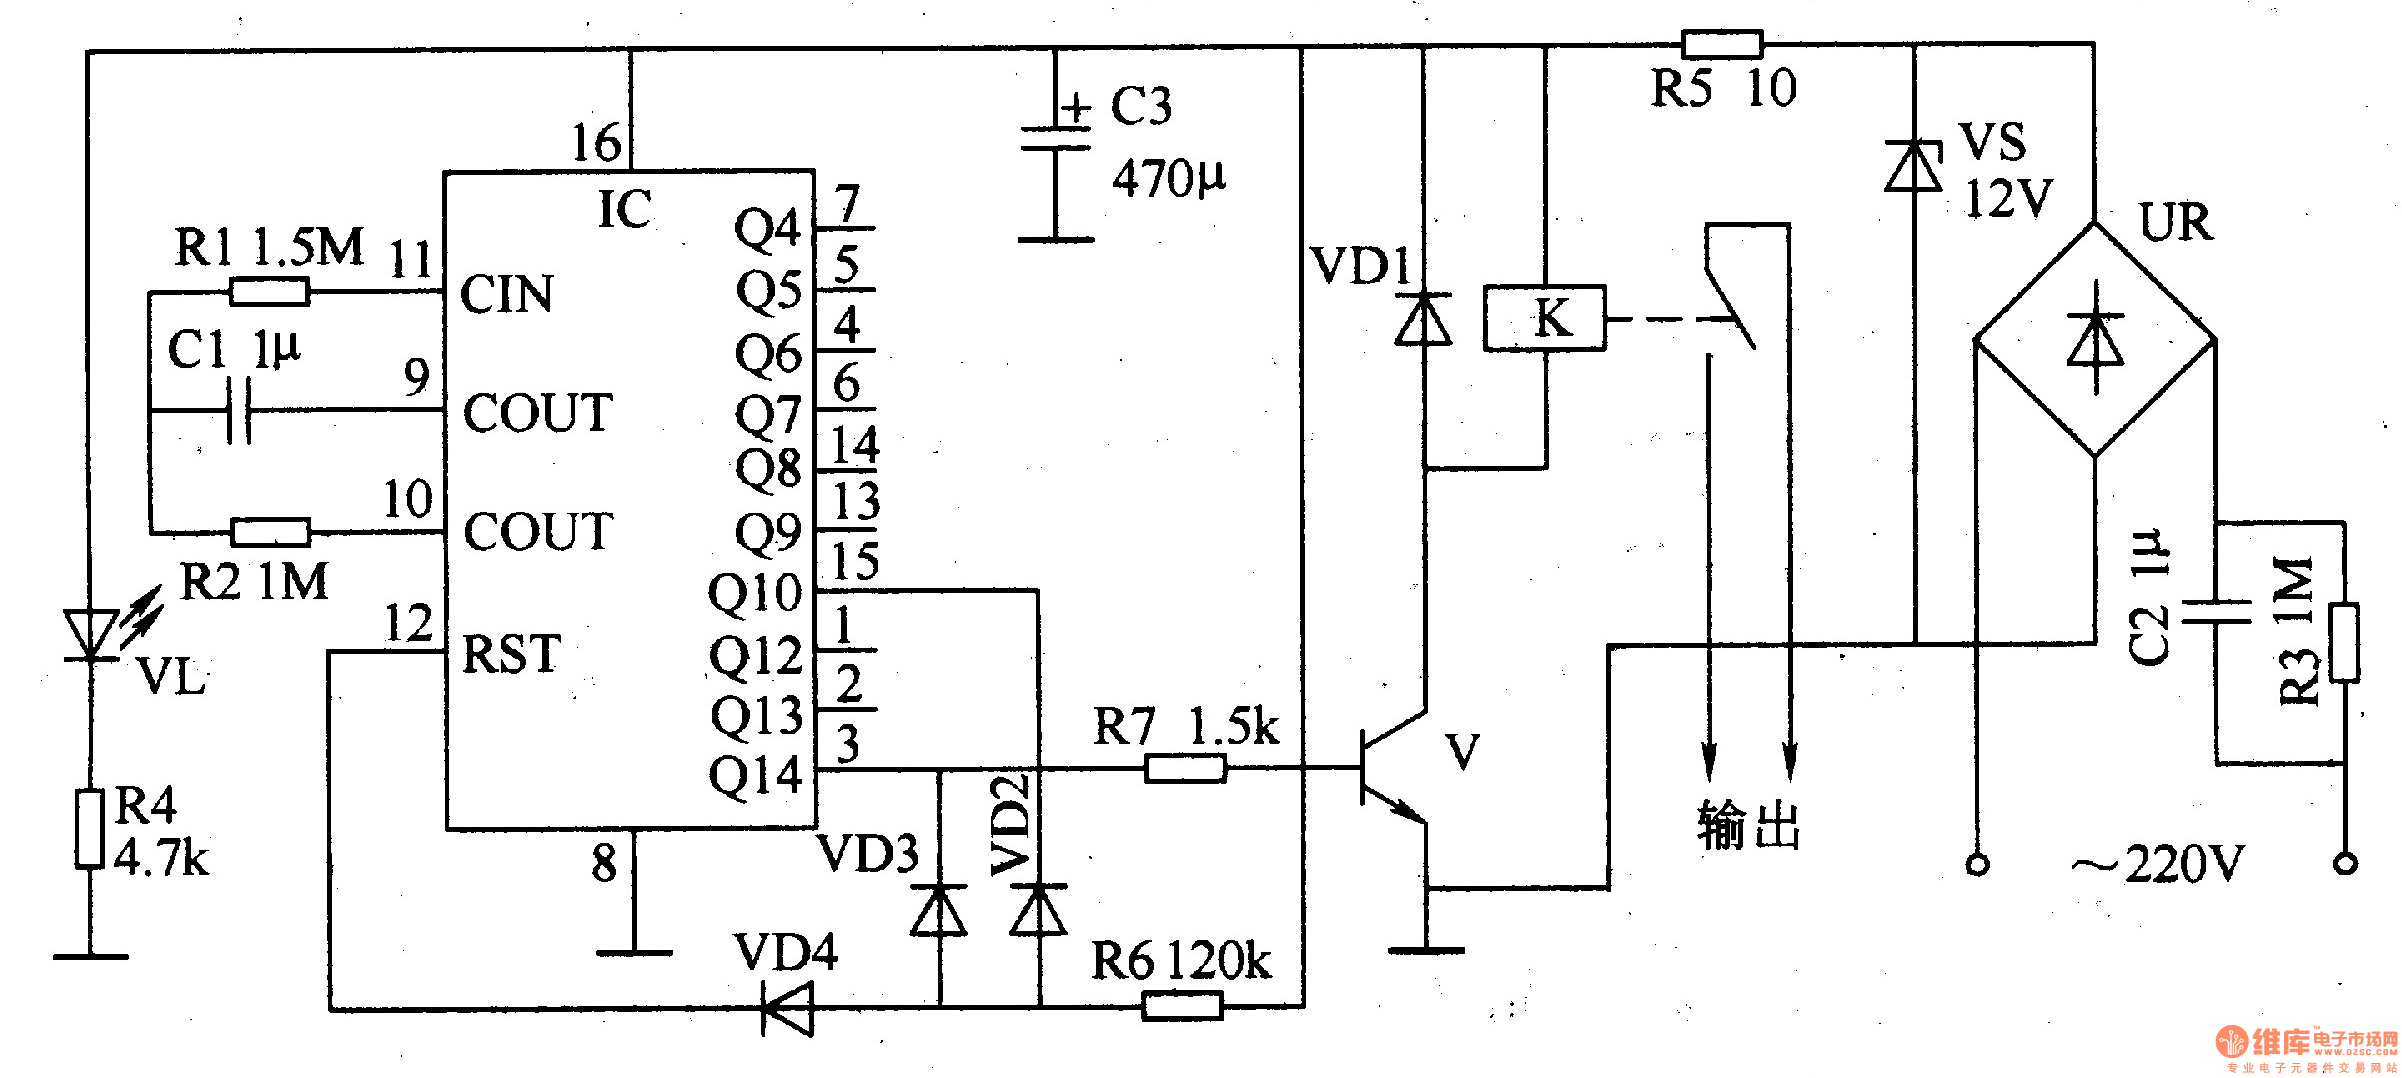 cycle timing controller 4 - time control - control circuit - circuit diagram